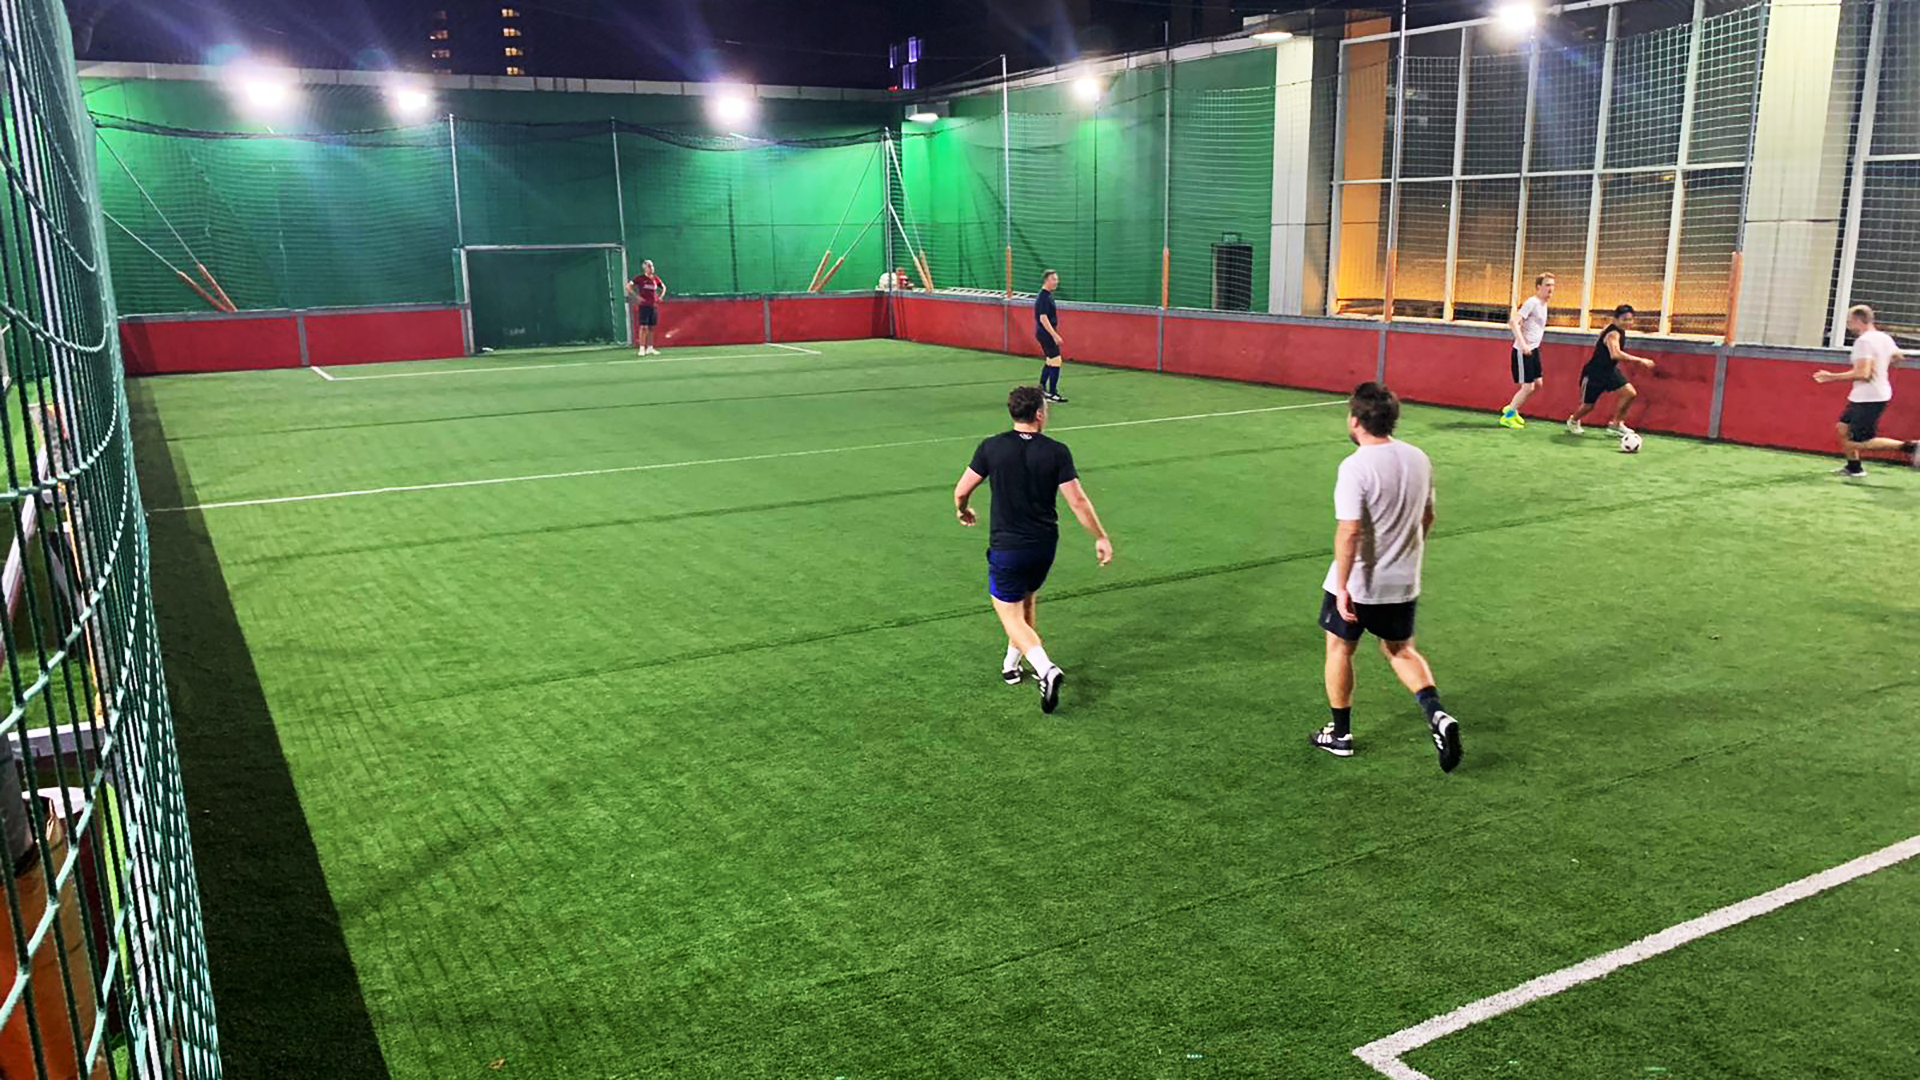 The pitch allows up to 10 players for a kickabout.